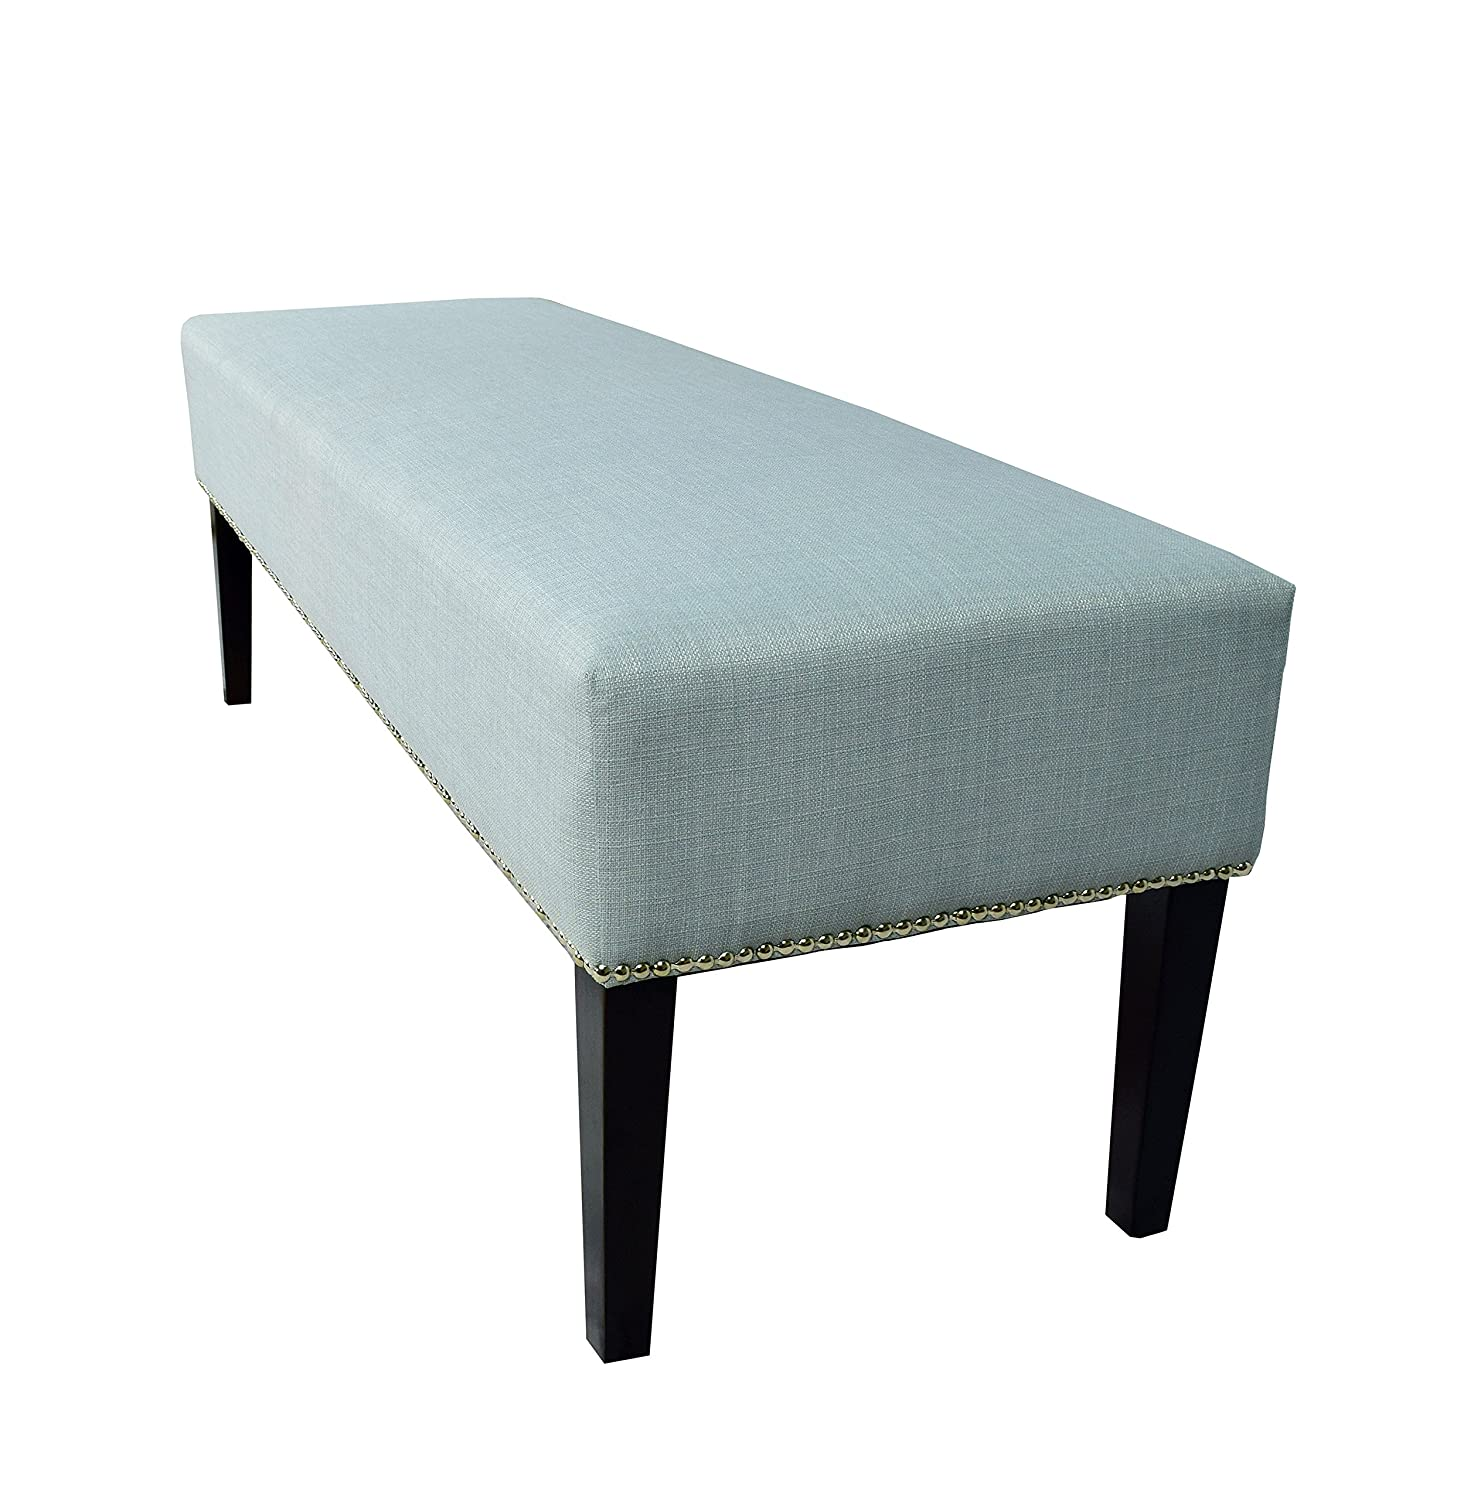 Amazon com mjl furniture designs roxanne collection padded upholstered bedroom accent bench hjm100 series sea mist kitchen dining